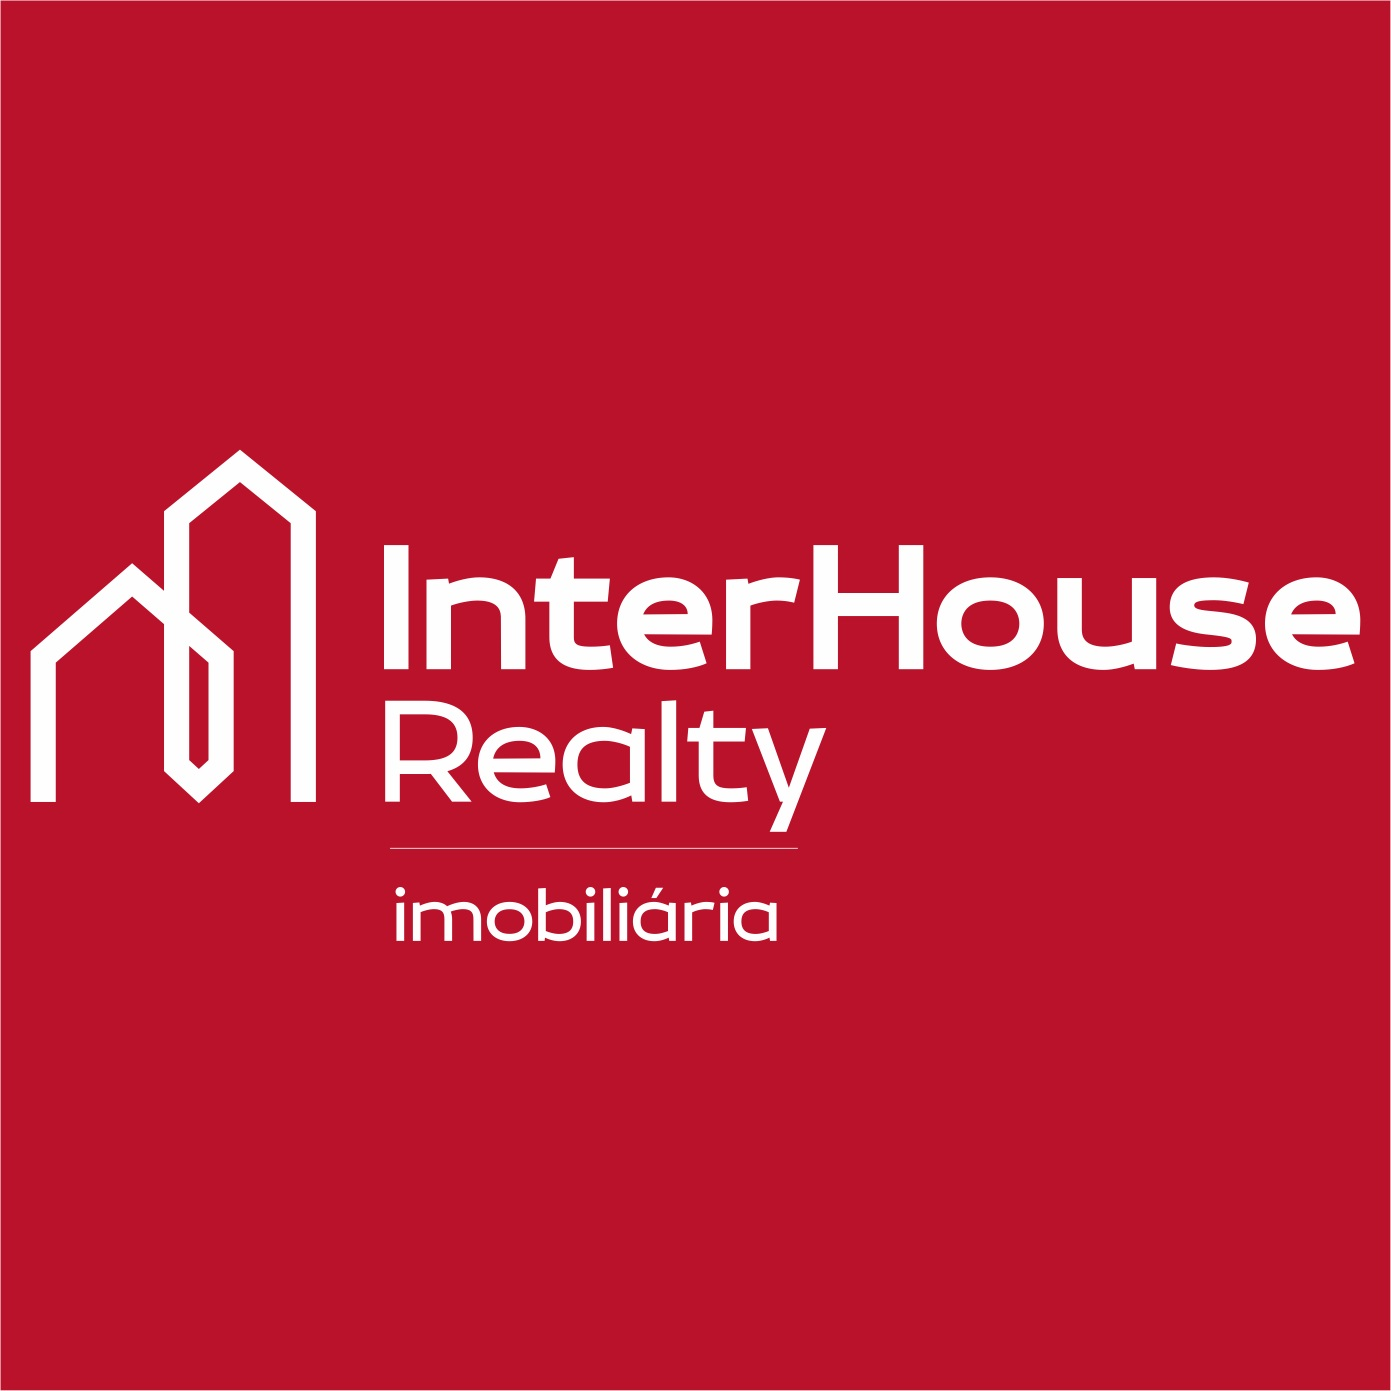 InterHouse Realty